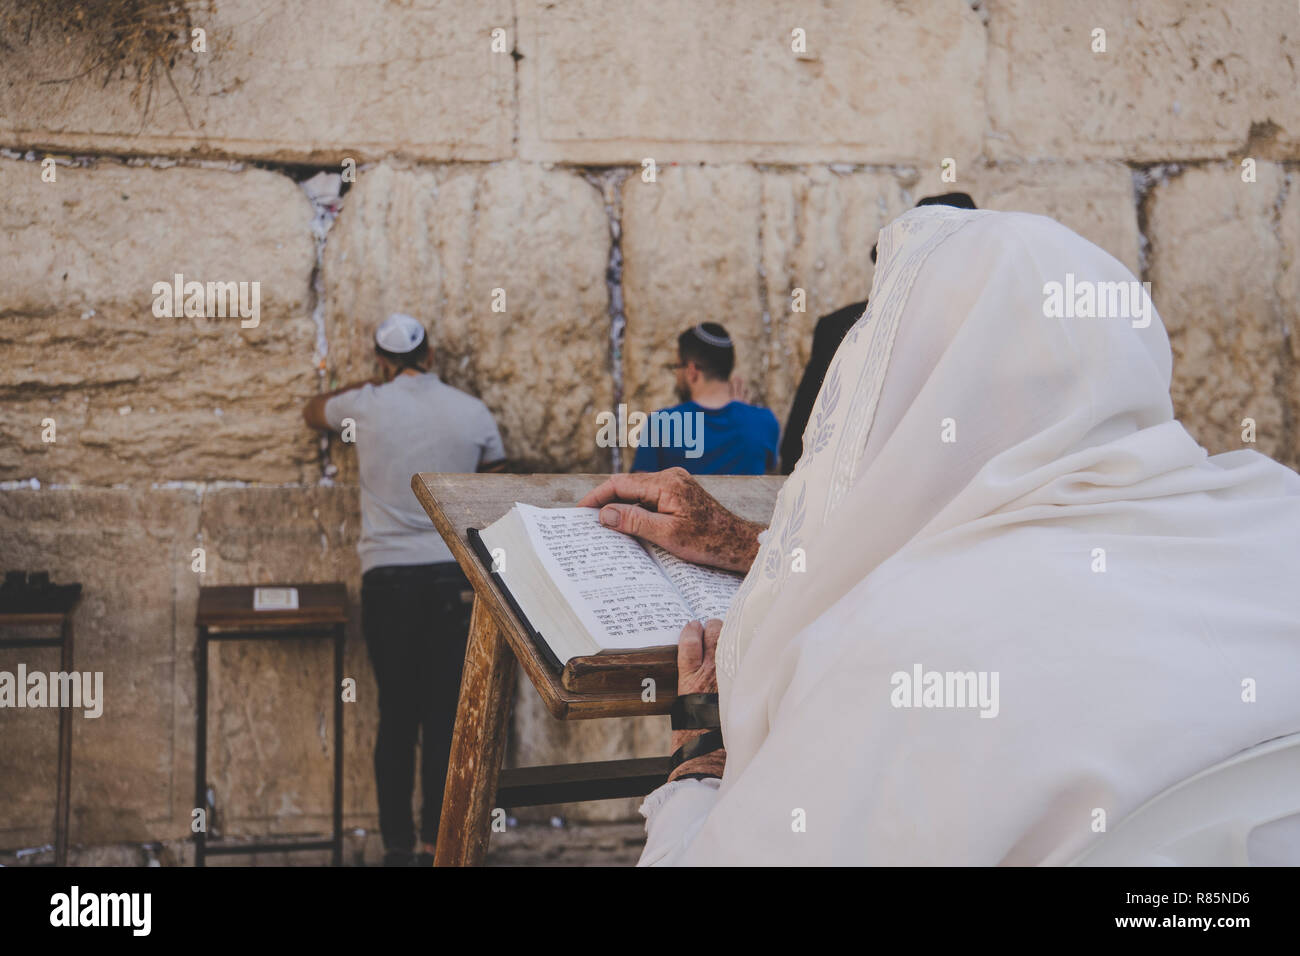 Religious orthodox jew praying at the Western wall and reads the Torah in Jerusalem old city. - Stock Image